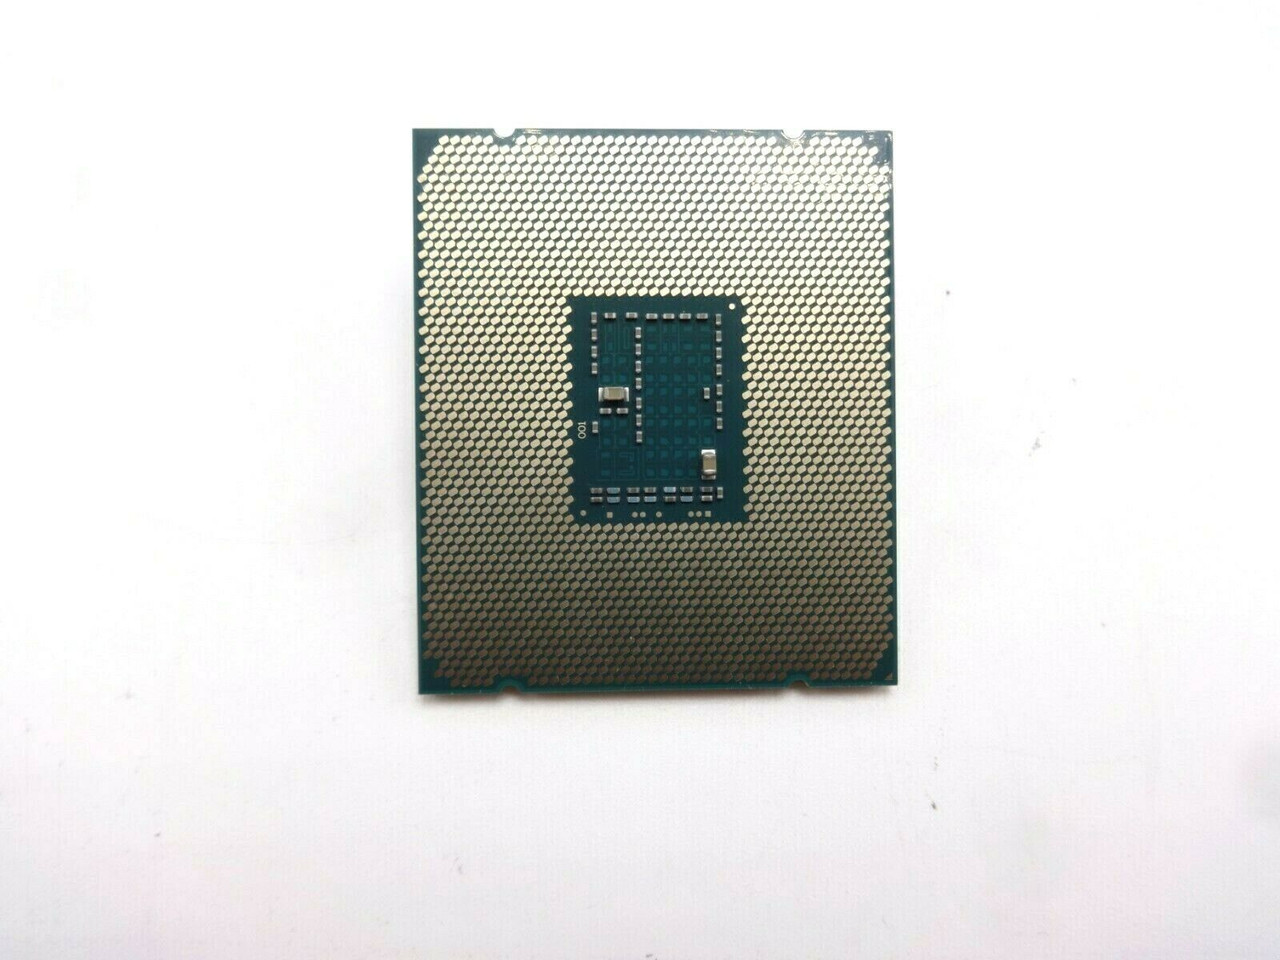 Intel Xeon SR1YC E5-2609 V3 1.9GHz 15M 6Core Processor